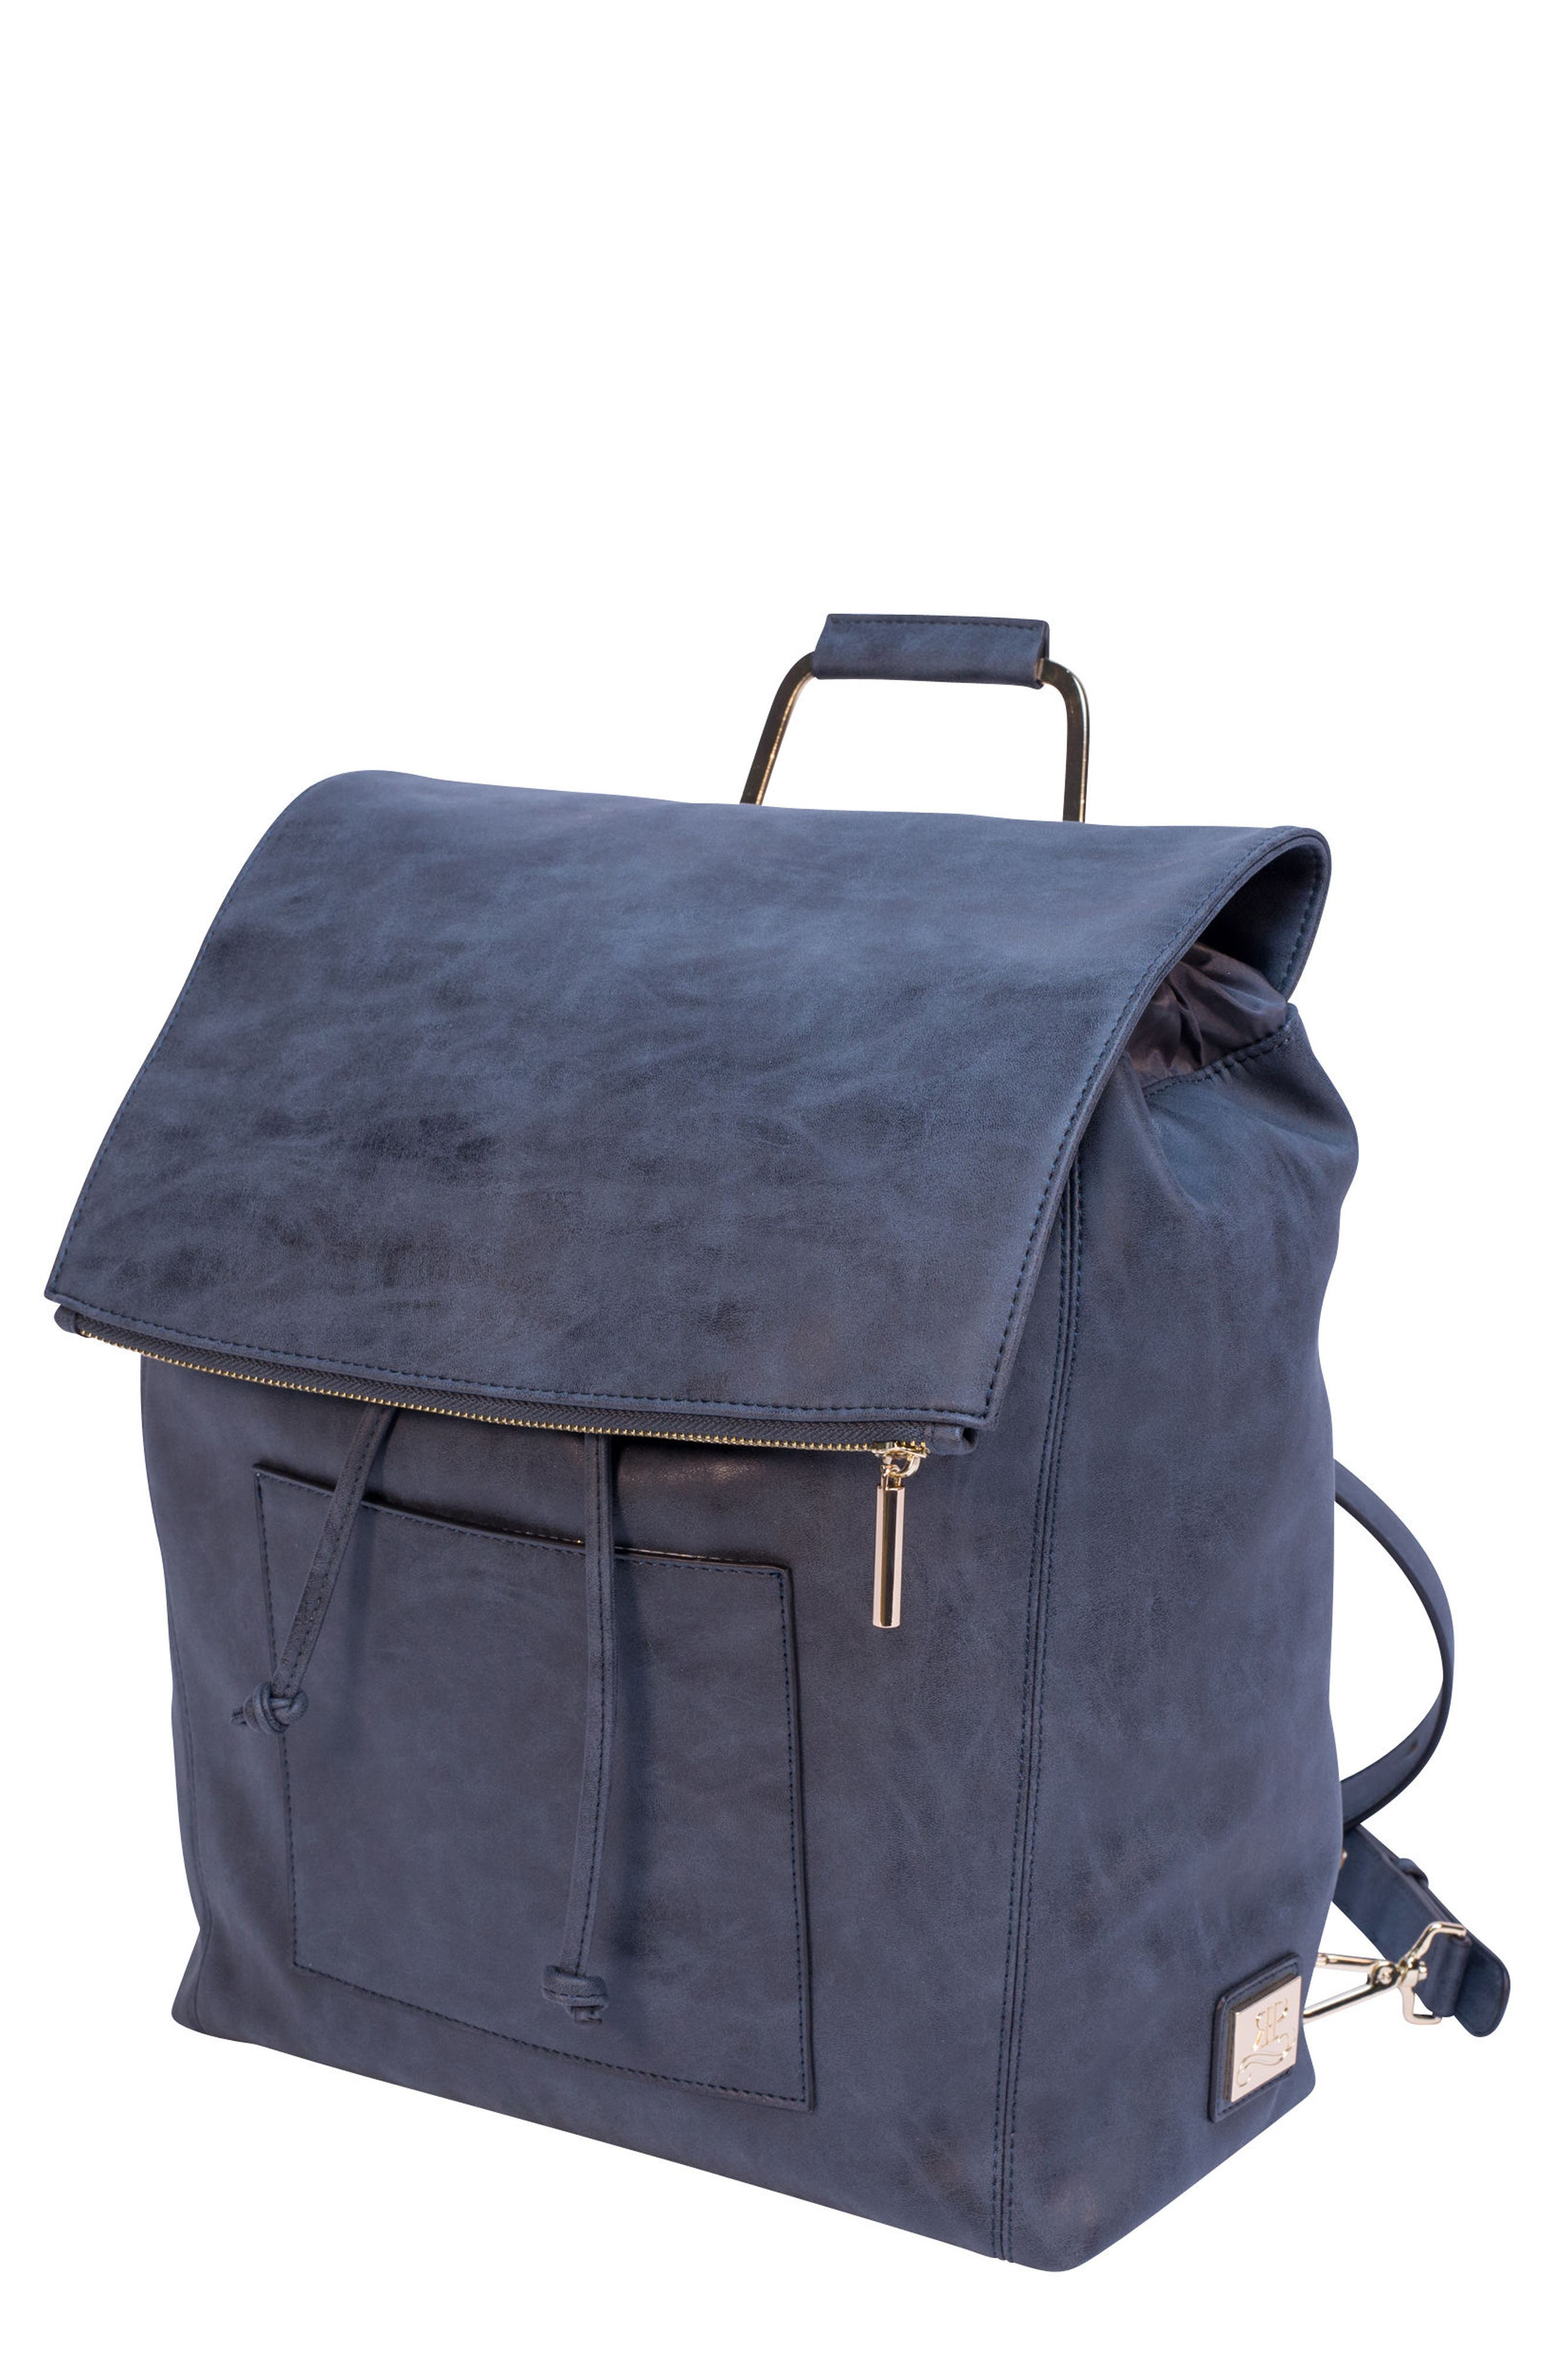 ROSIE POPE, Highbury Hill Diaper Backpack, Main thumbnail 1, color, DUSTY NAVY